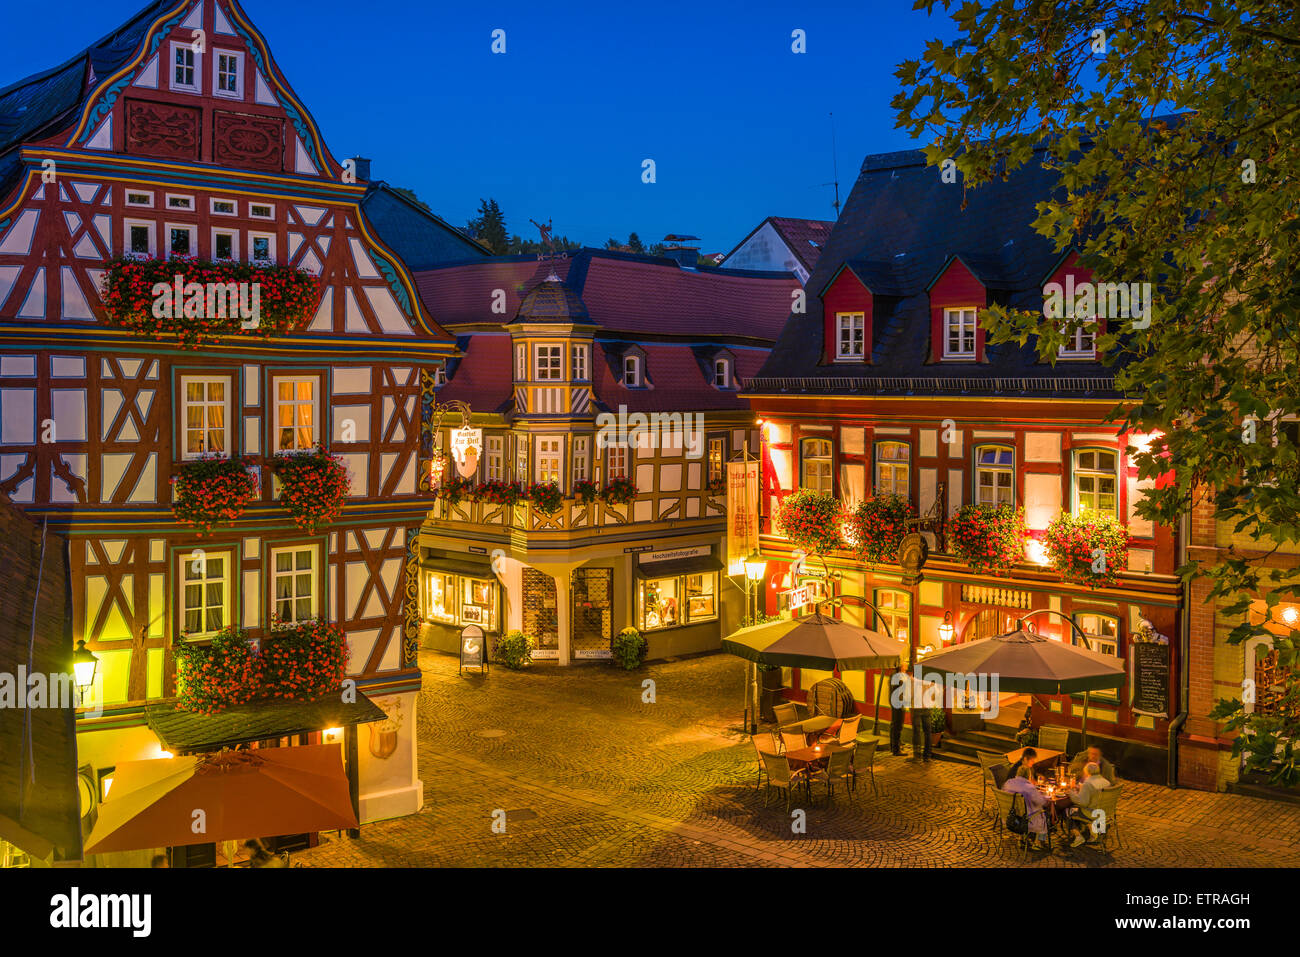 Germany Hesse Taunus German Timber Frame Stock Photos & Germany ...